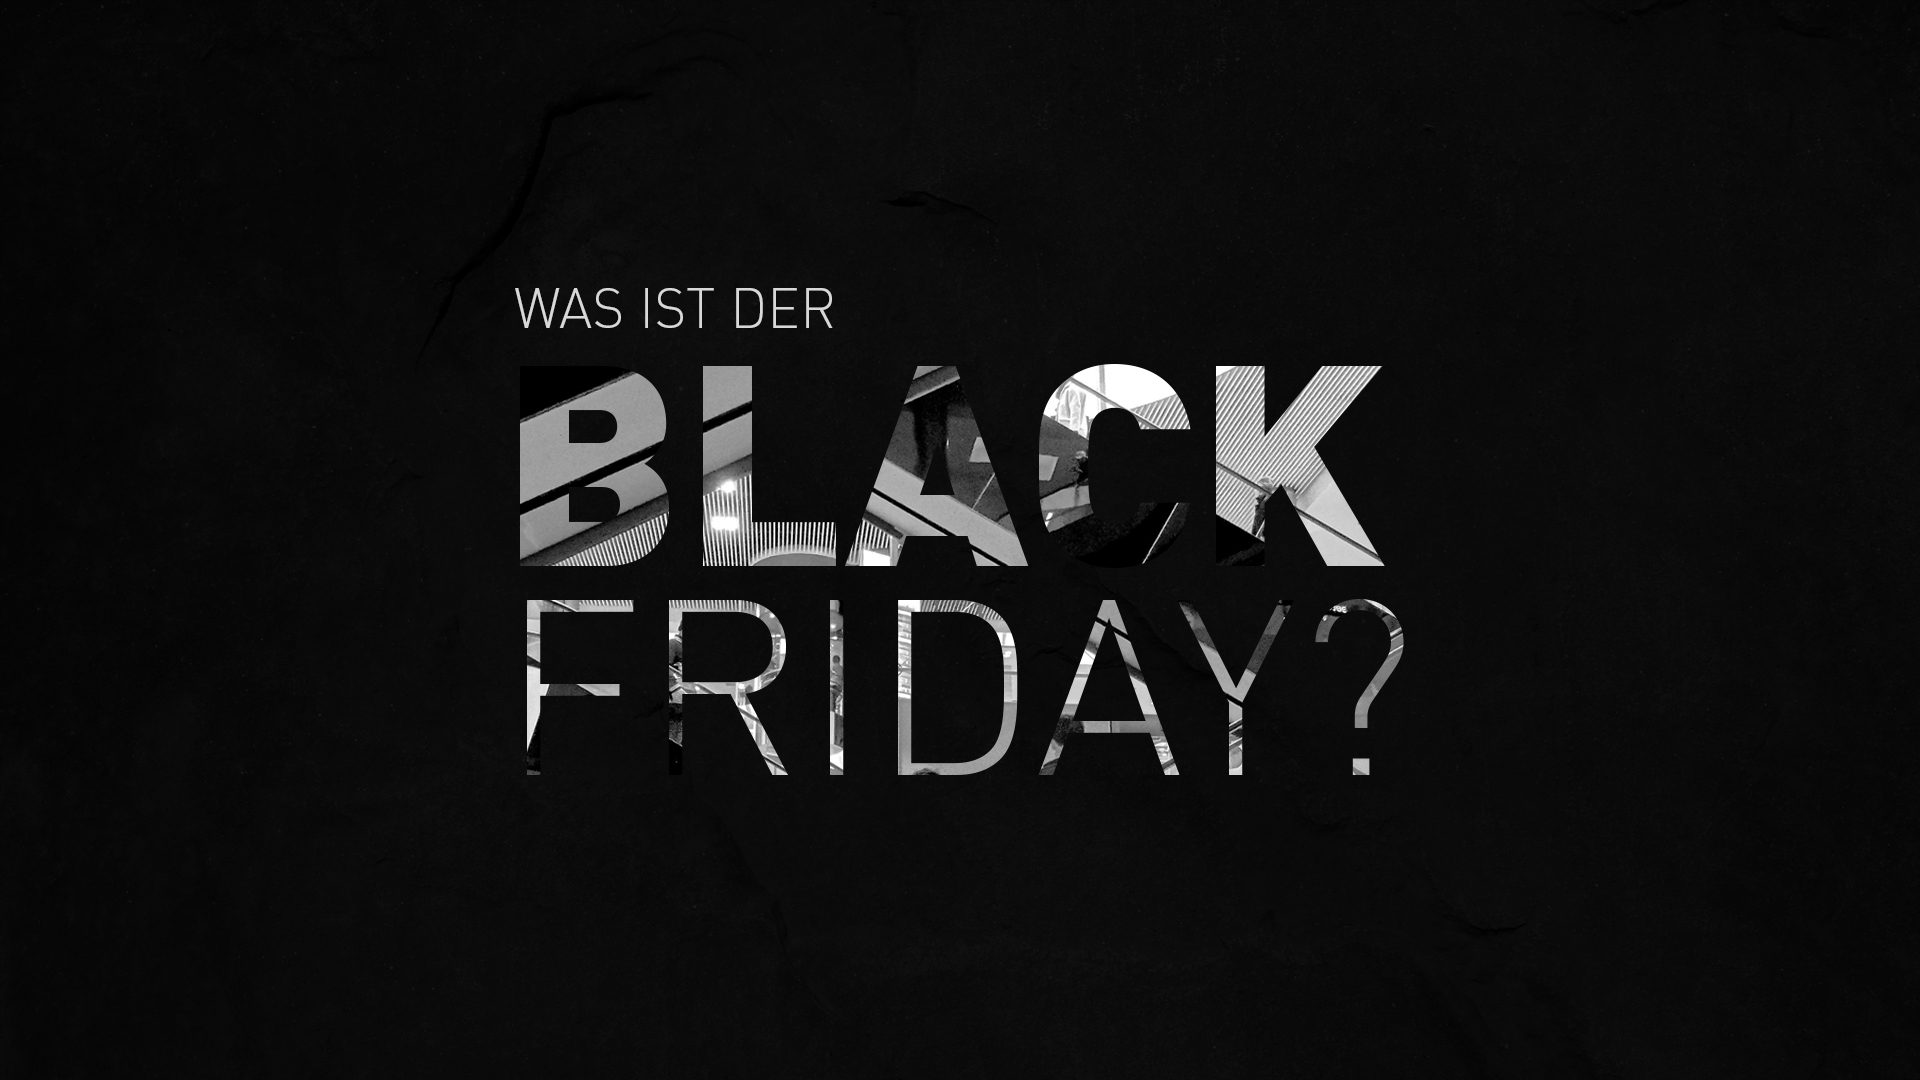 Was ist der Black Friday?